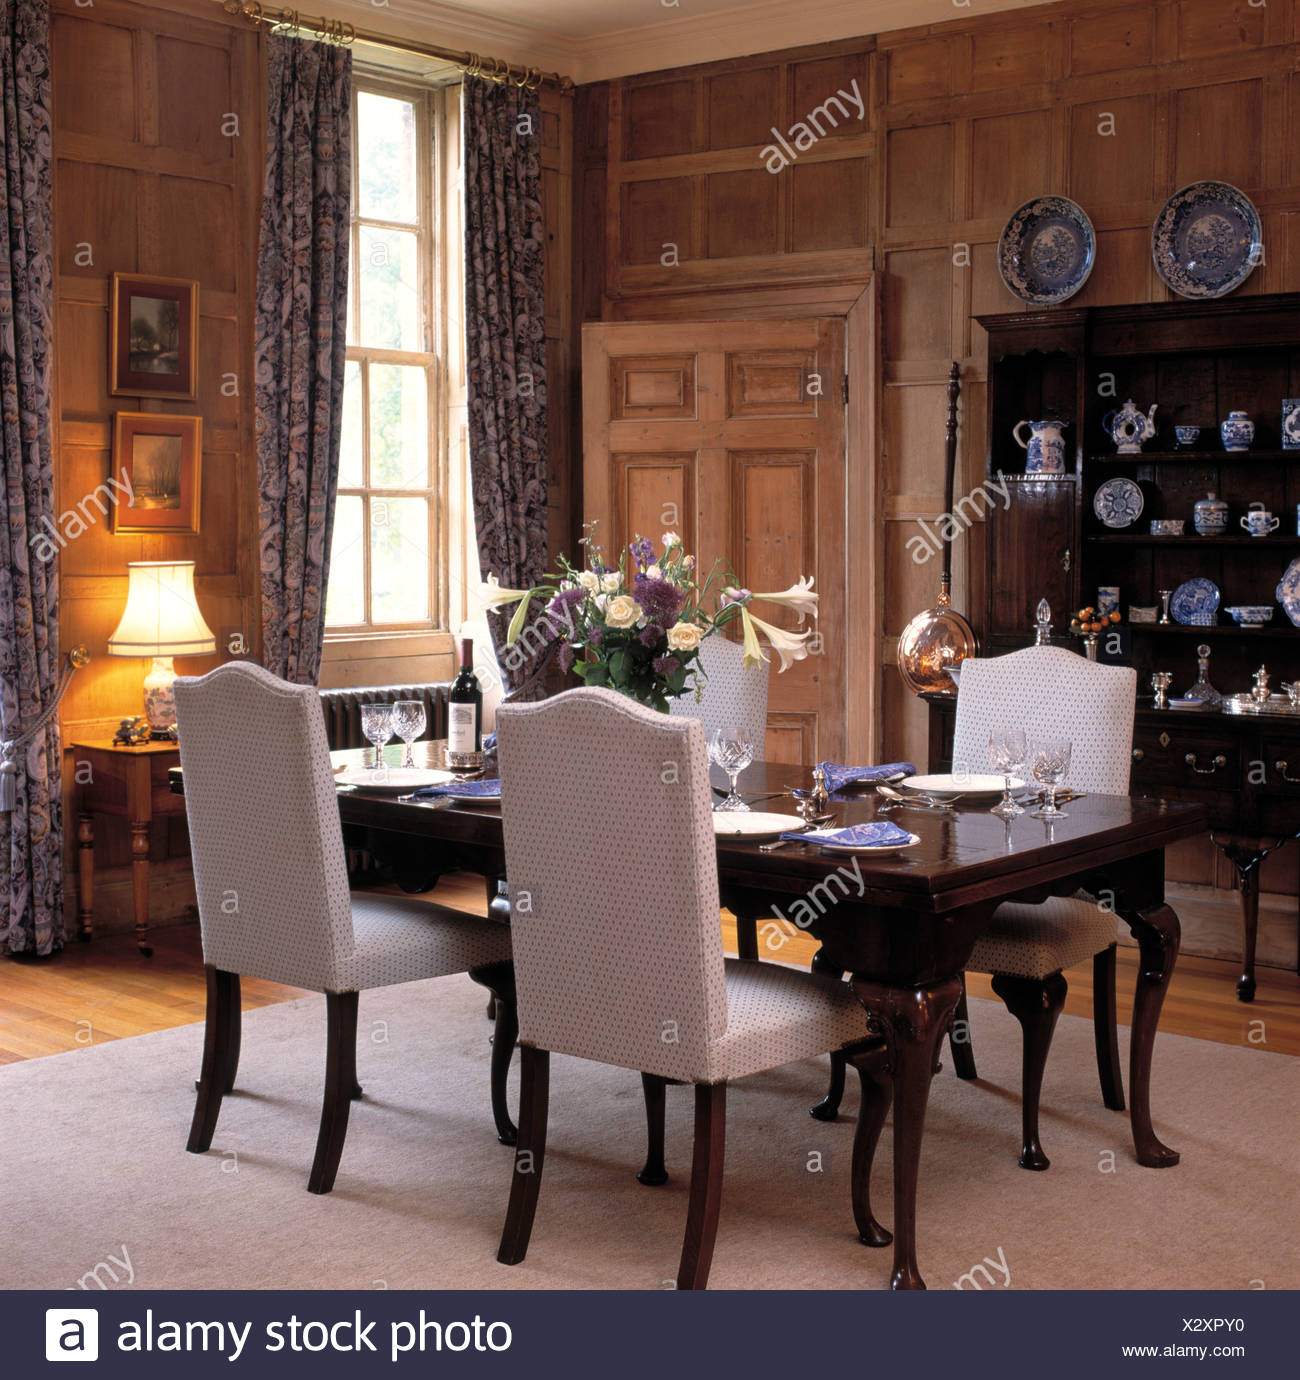 Upholstered Beige Highback Chairs And Antique Table In Panelled Country  Dining Room With Lighted Lamp On